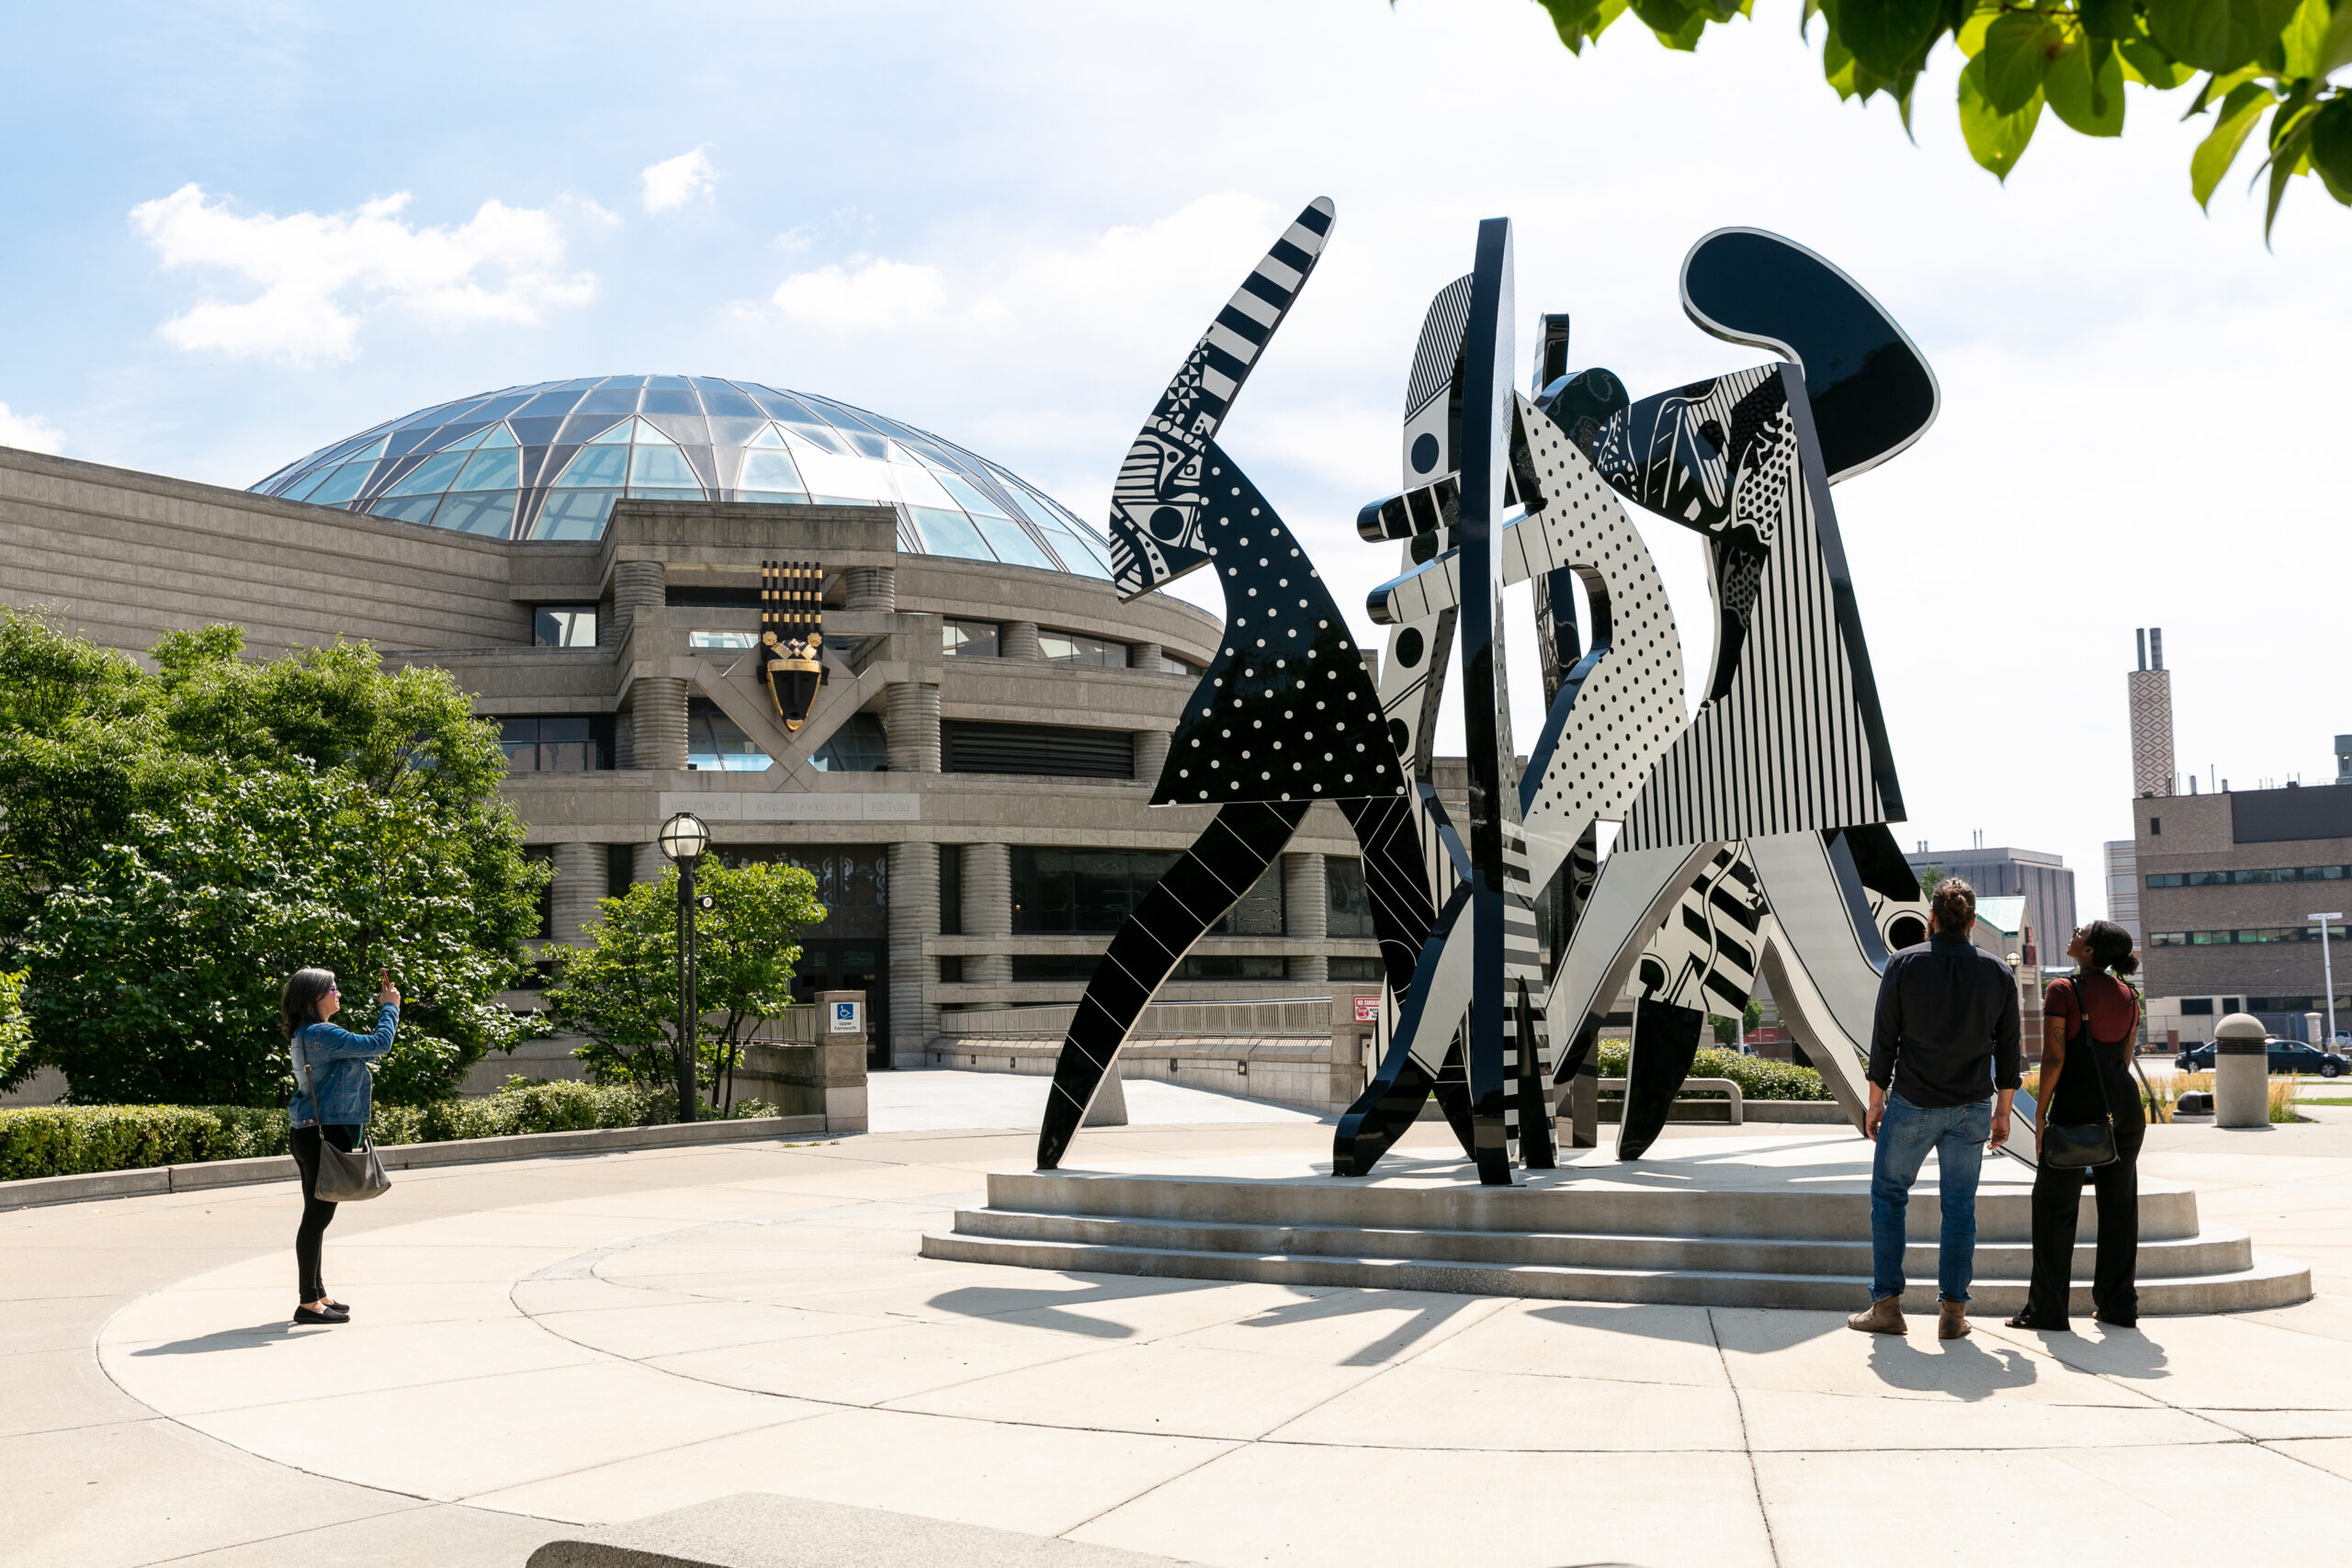 Sculpture outside of Charles H. Wright Museum